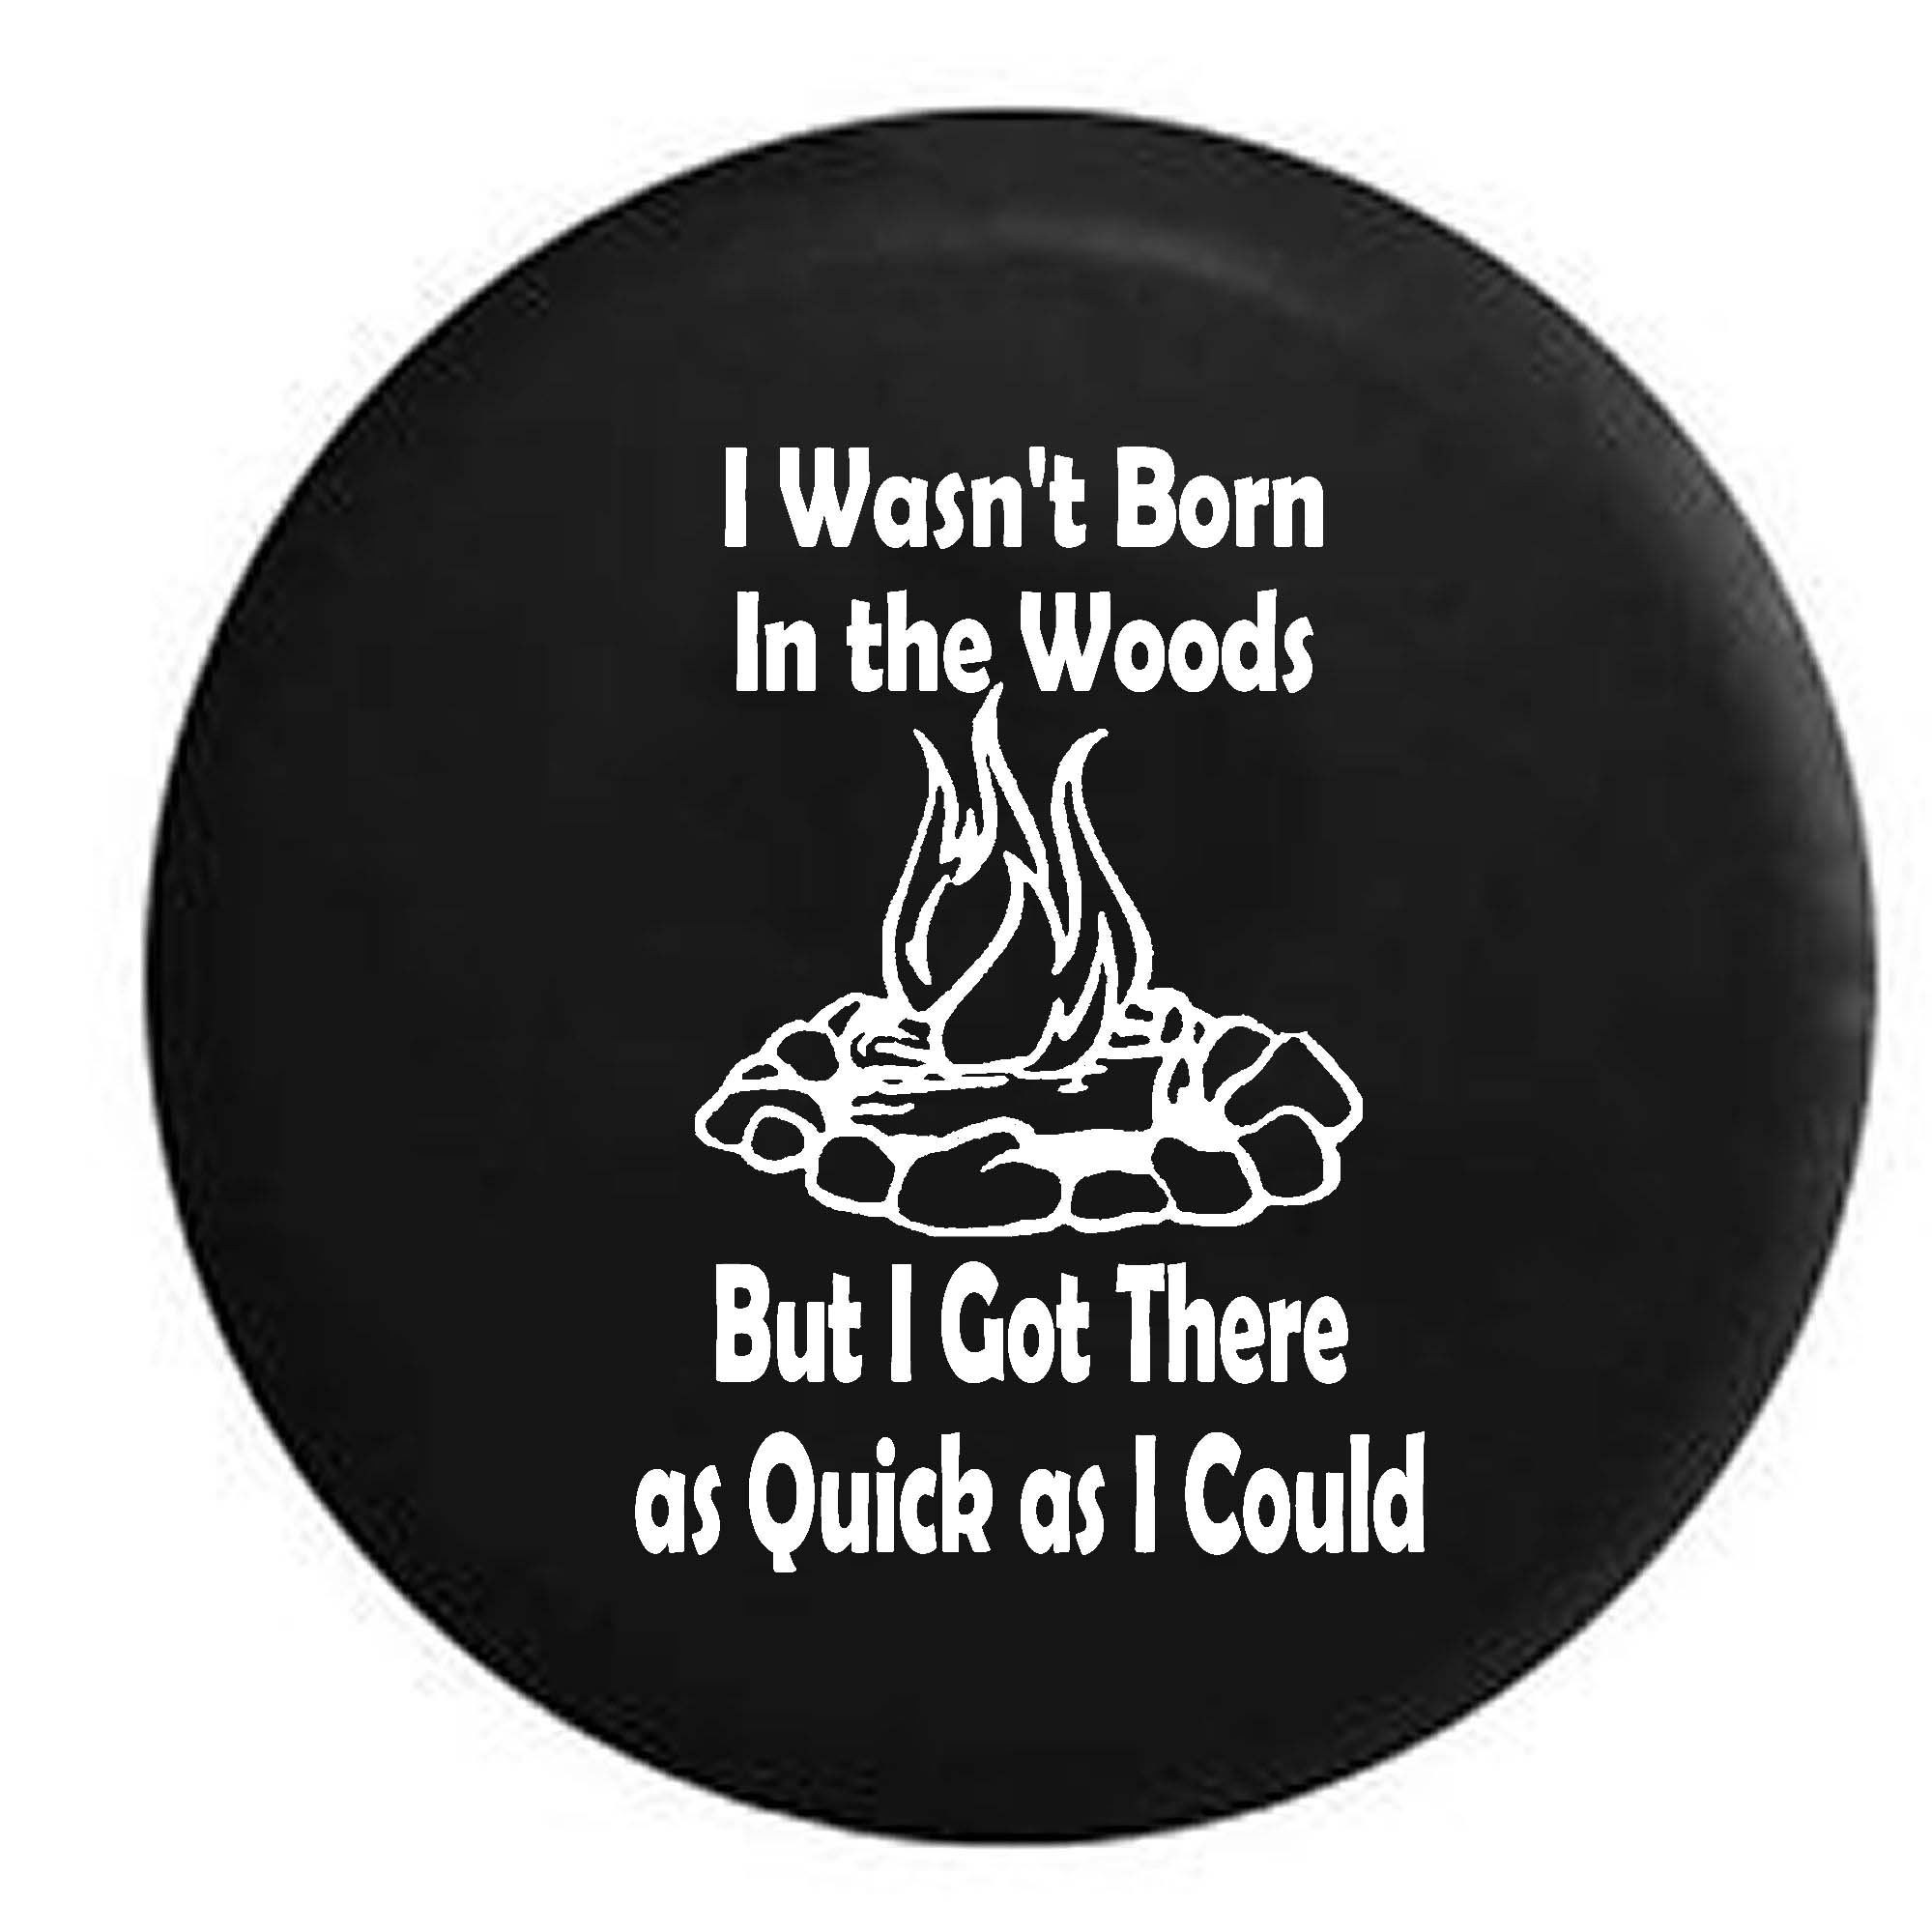 I Wasn't Born in the Woods But Got there as Quick as I Could Spare Tire Cover Black 27.5 in